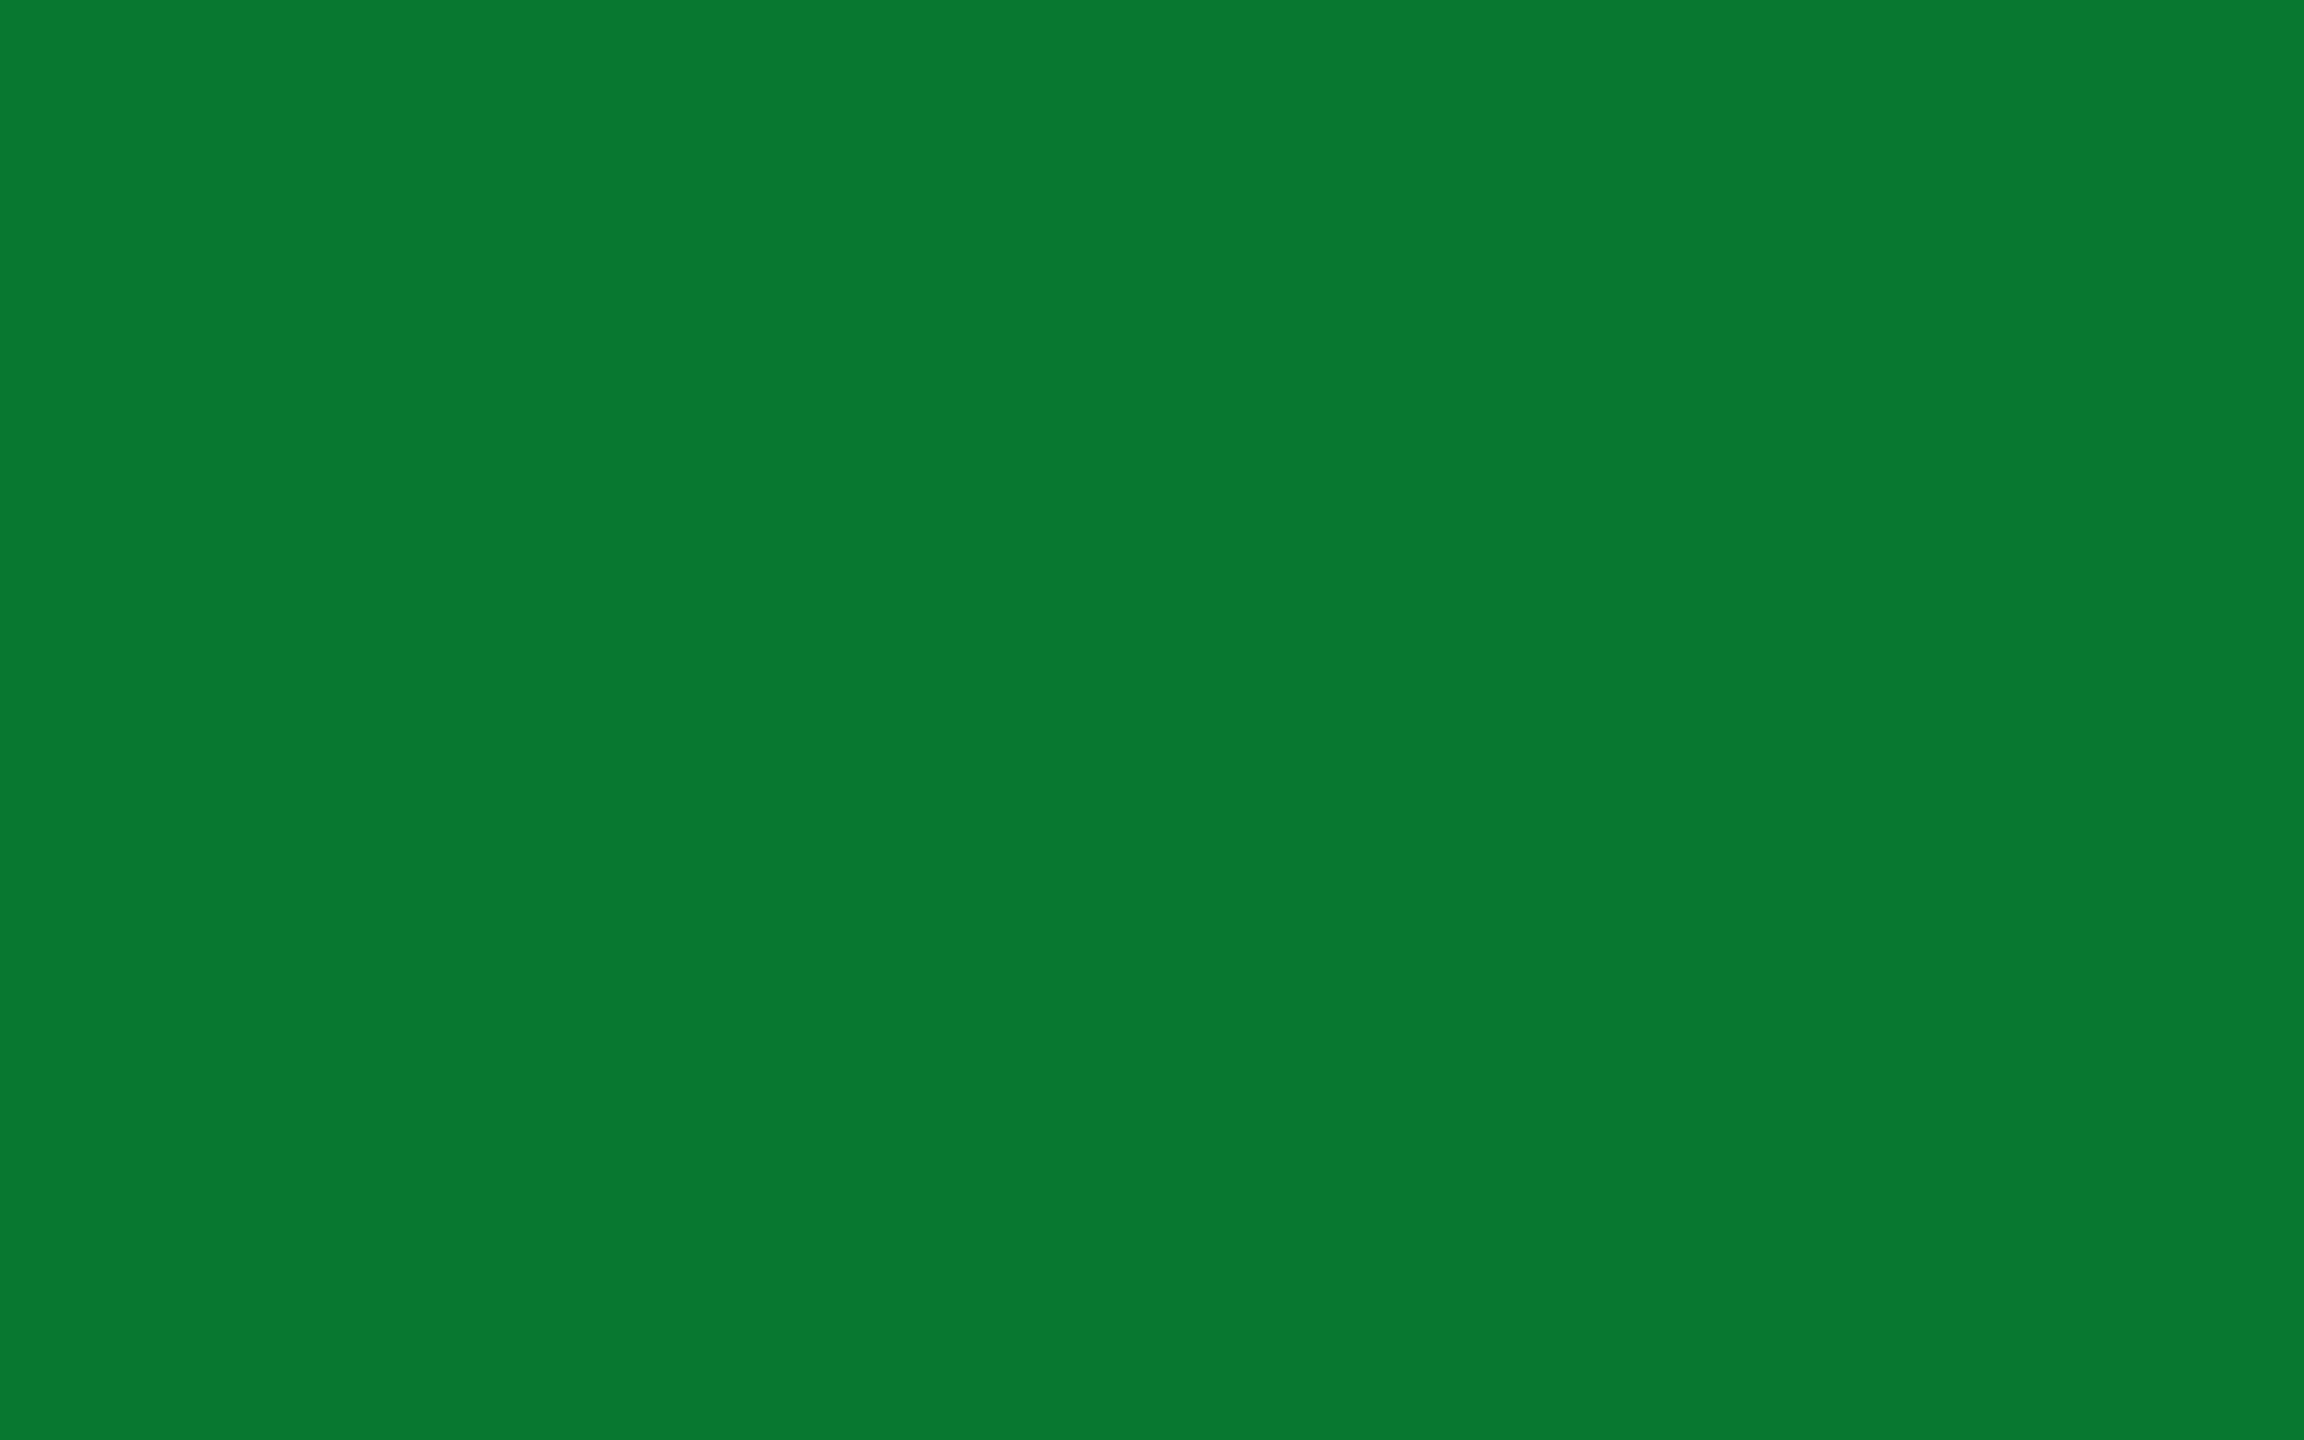 2304x1440 La Salle Green Solid Color Background